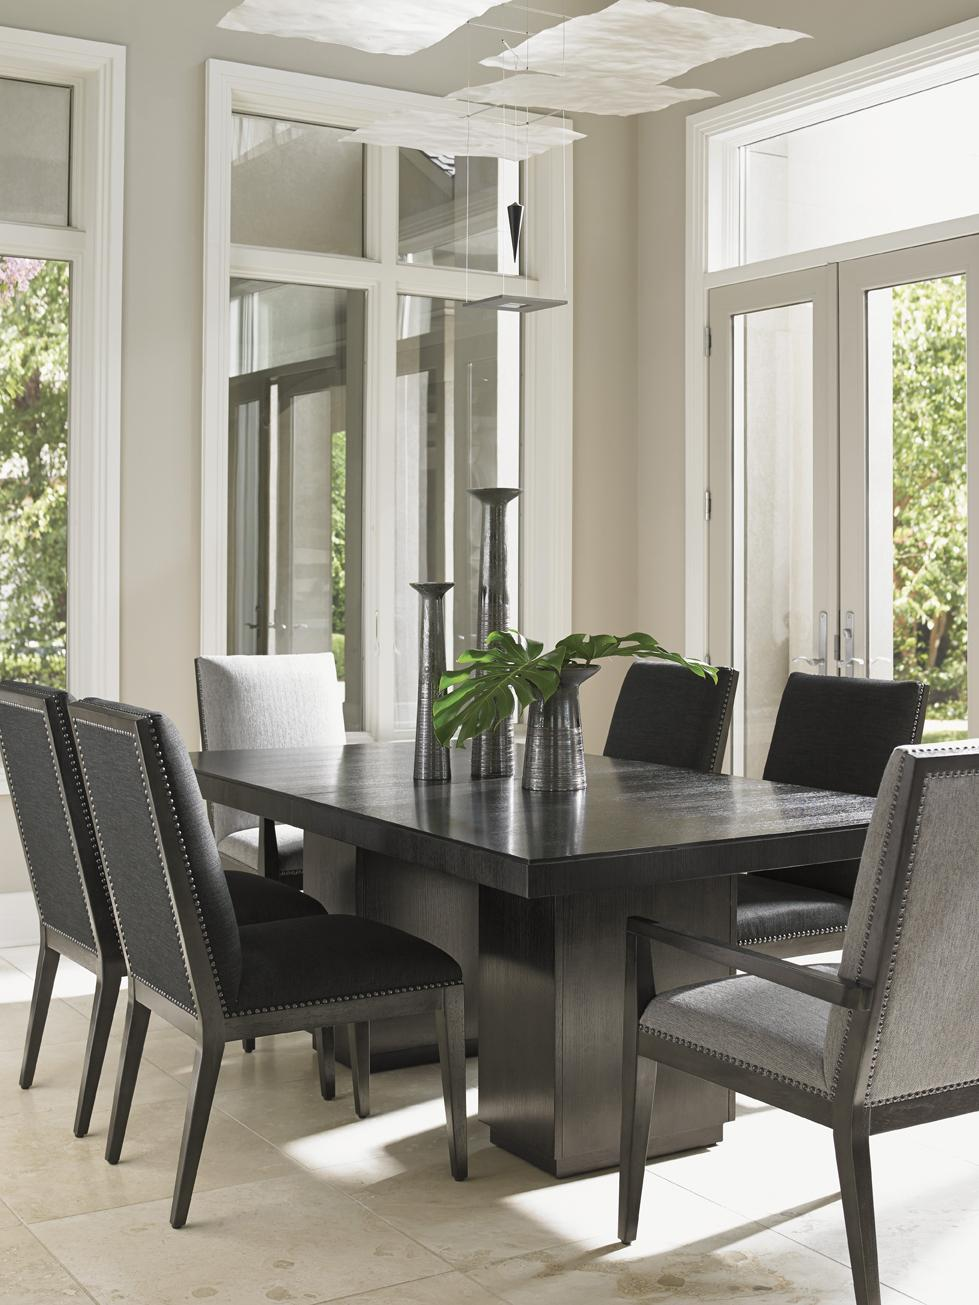 Lexington Carrera Modena Double Pedestal Dining Table With